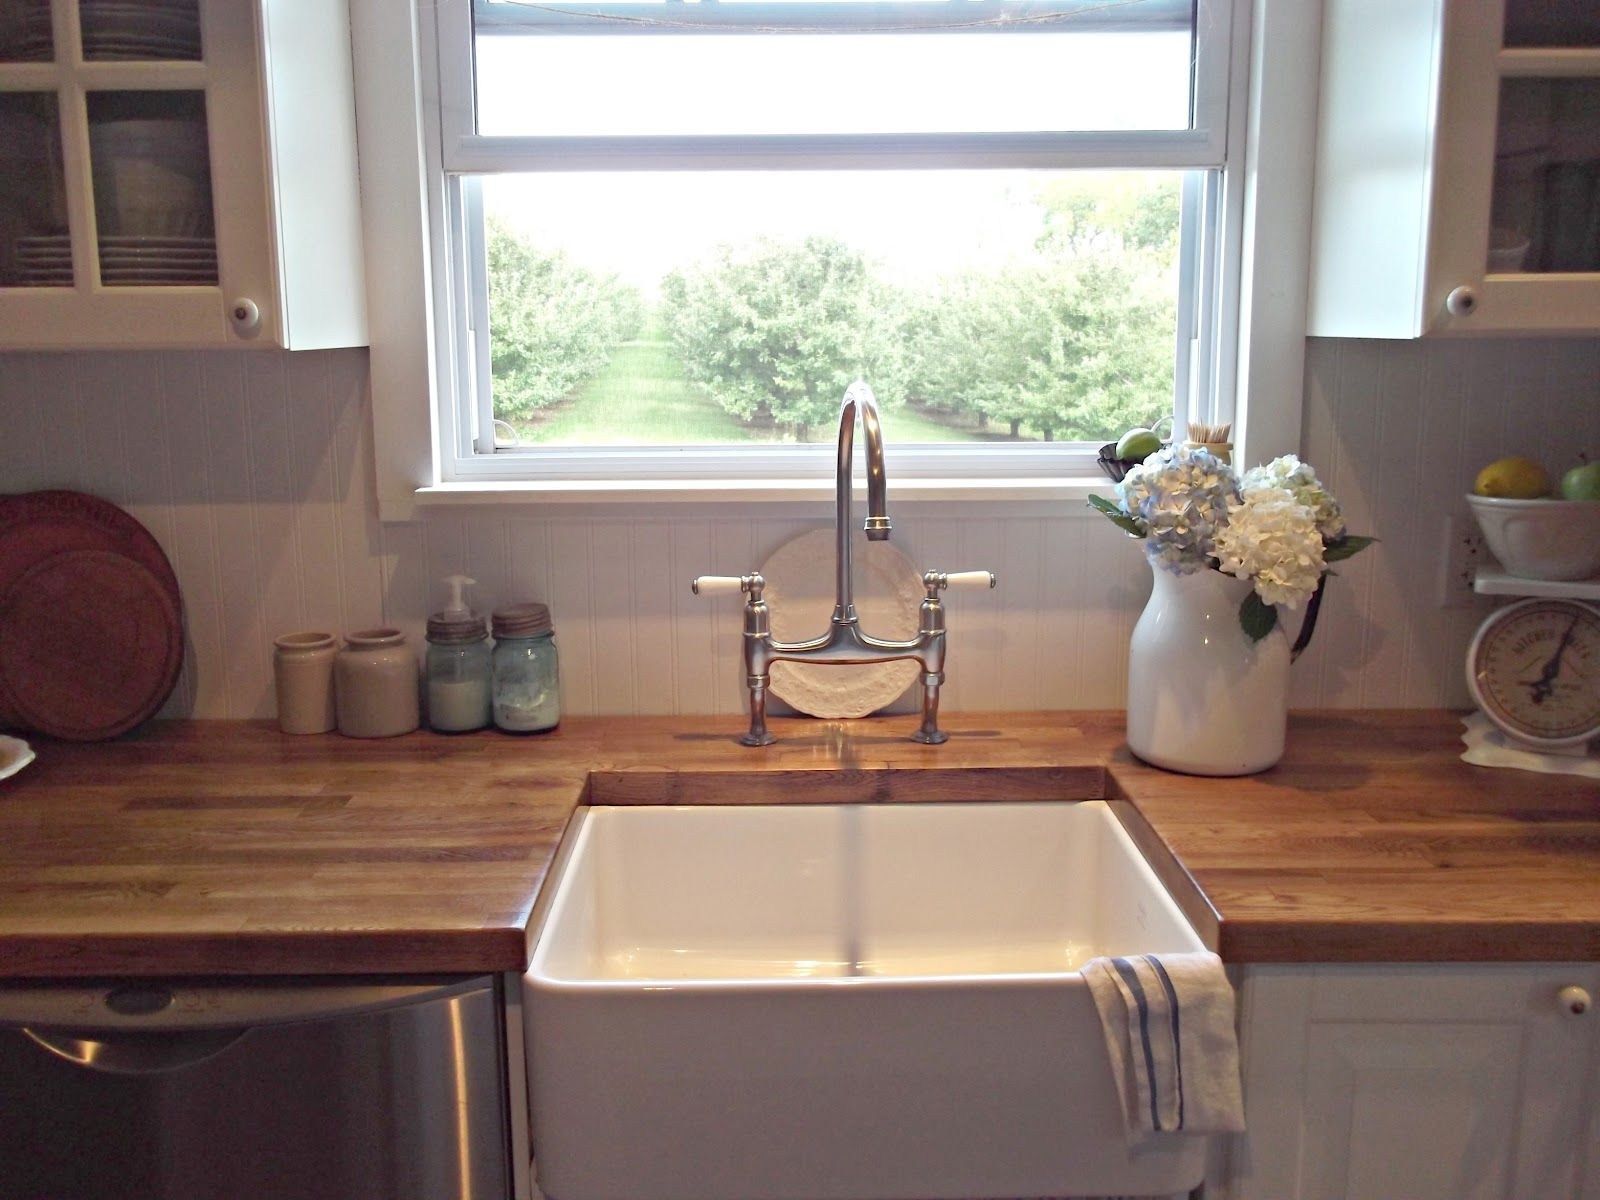 FARMHOUSE STYLE SINKS Rustic Farmhouse A Farm Style Sink Home